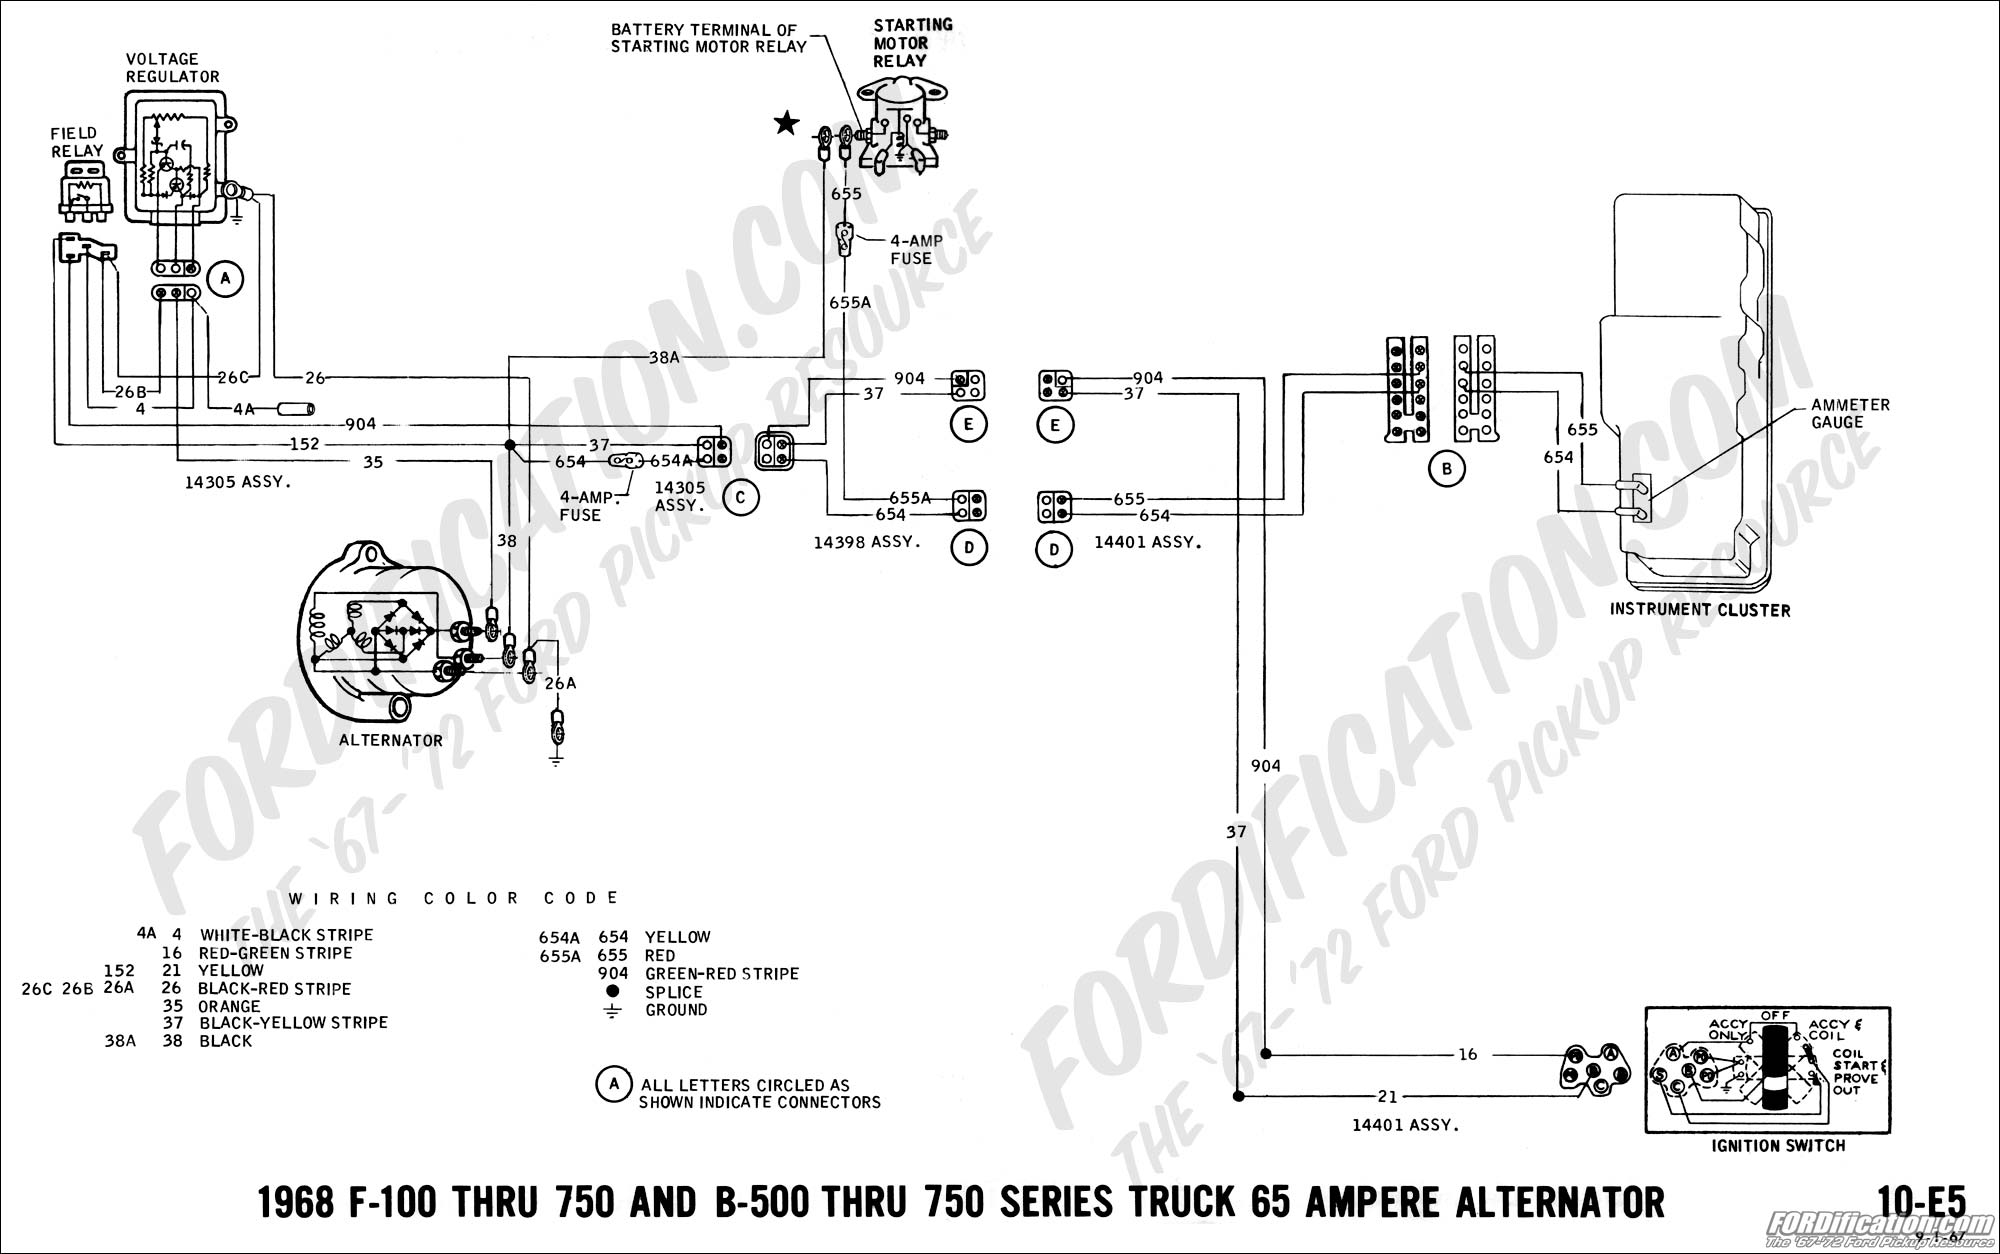 ford truck technical drawings and schematics section h wiring rh fordification com 1979 Ford F-250 Wiring Diagram Ford Electrical Wiring Diagrams